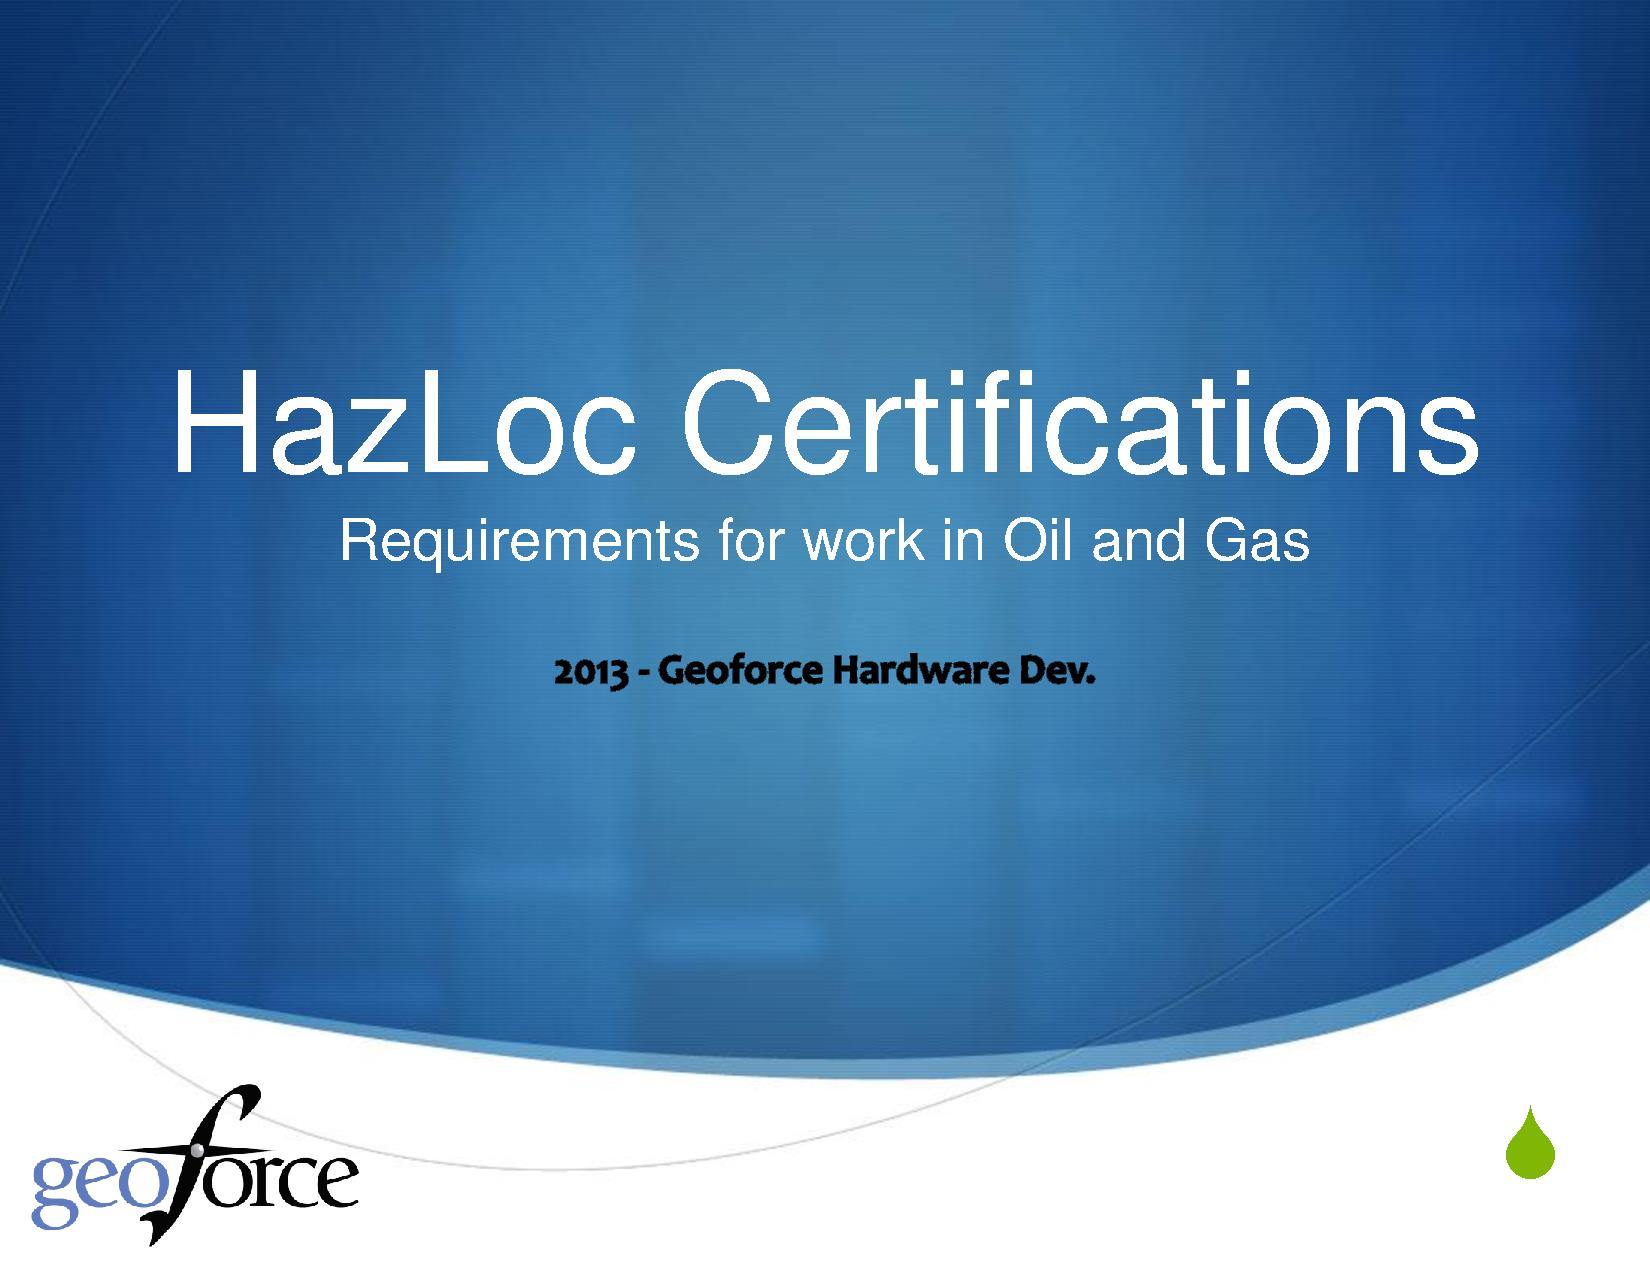 HazLoc Certifications 2013